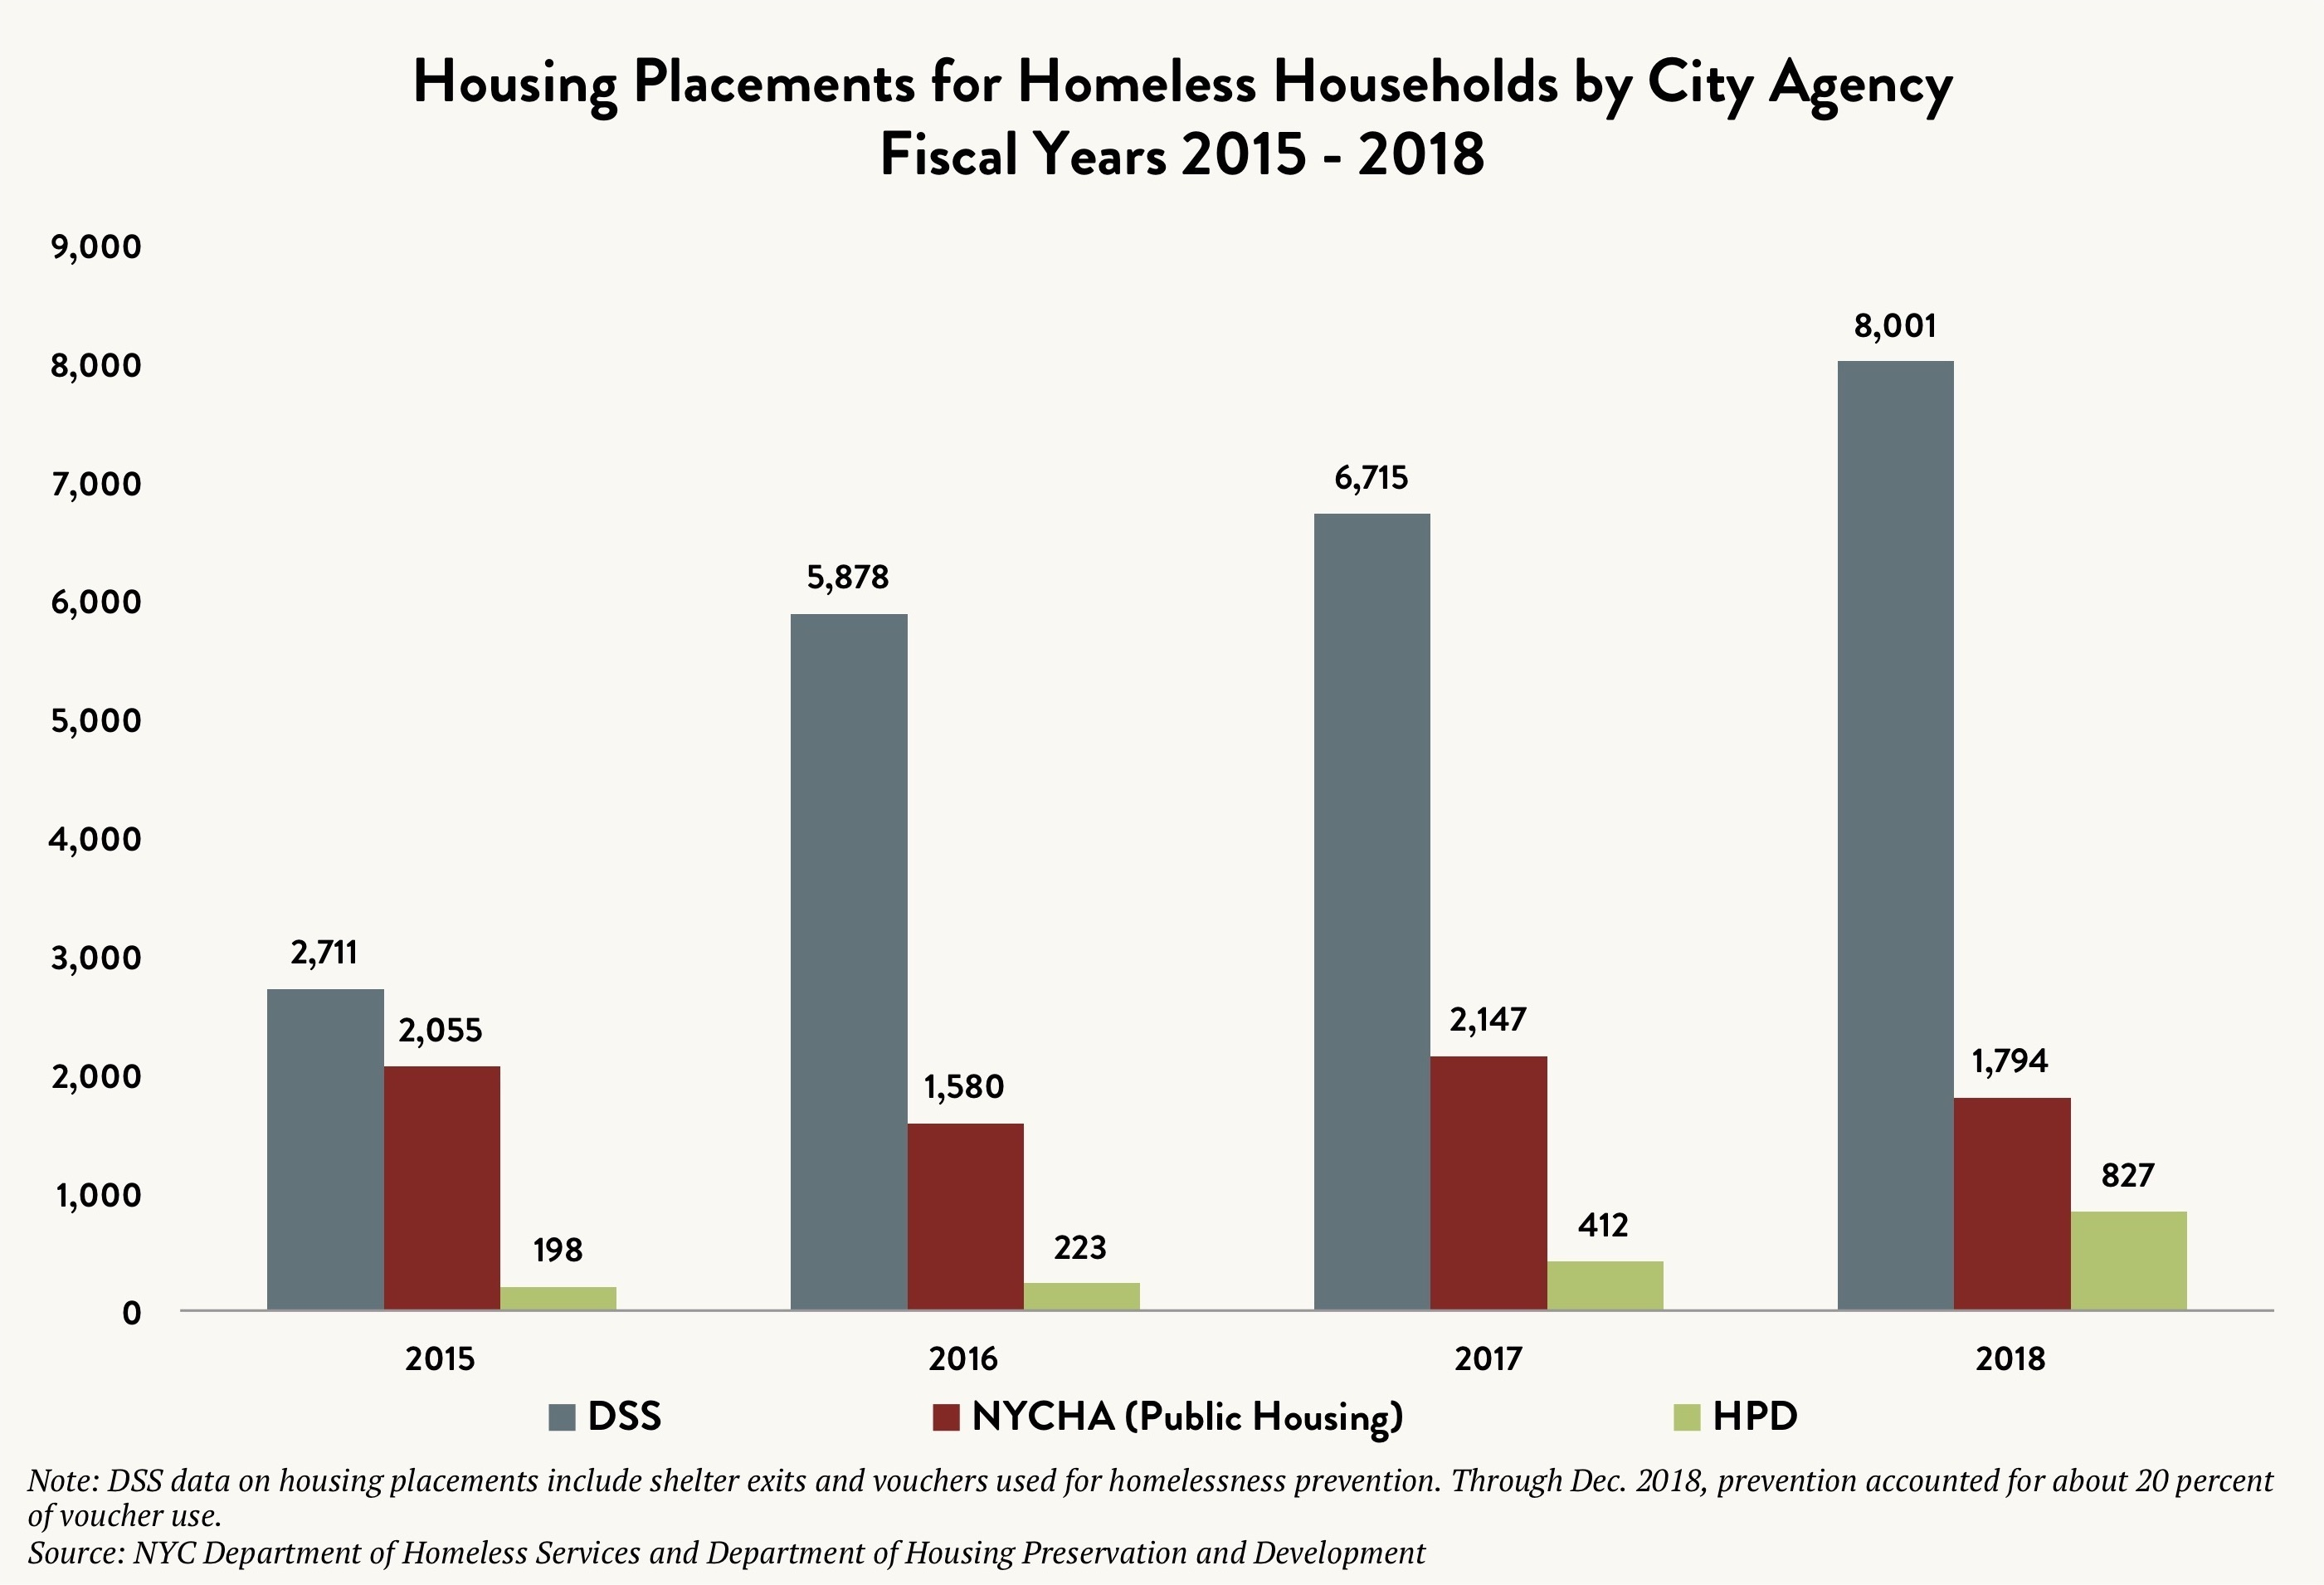 Bar graph comparing the housing placements for homeless households by City Agency (DSS vs. NYCHA / Public Housing vs. HPD) between fiscal years 2015 and 2018